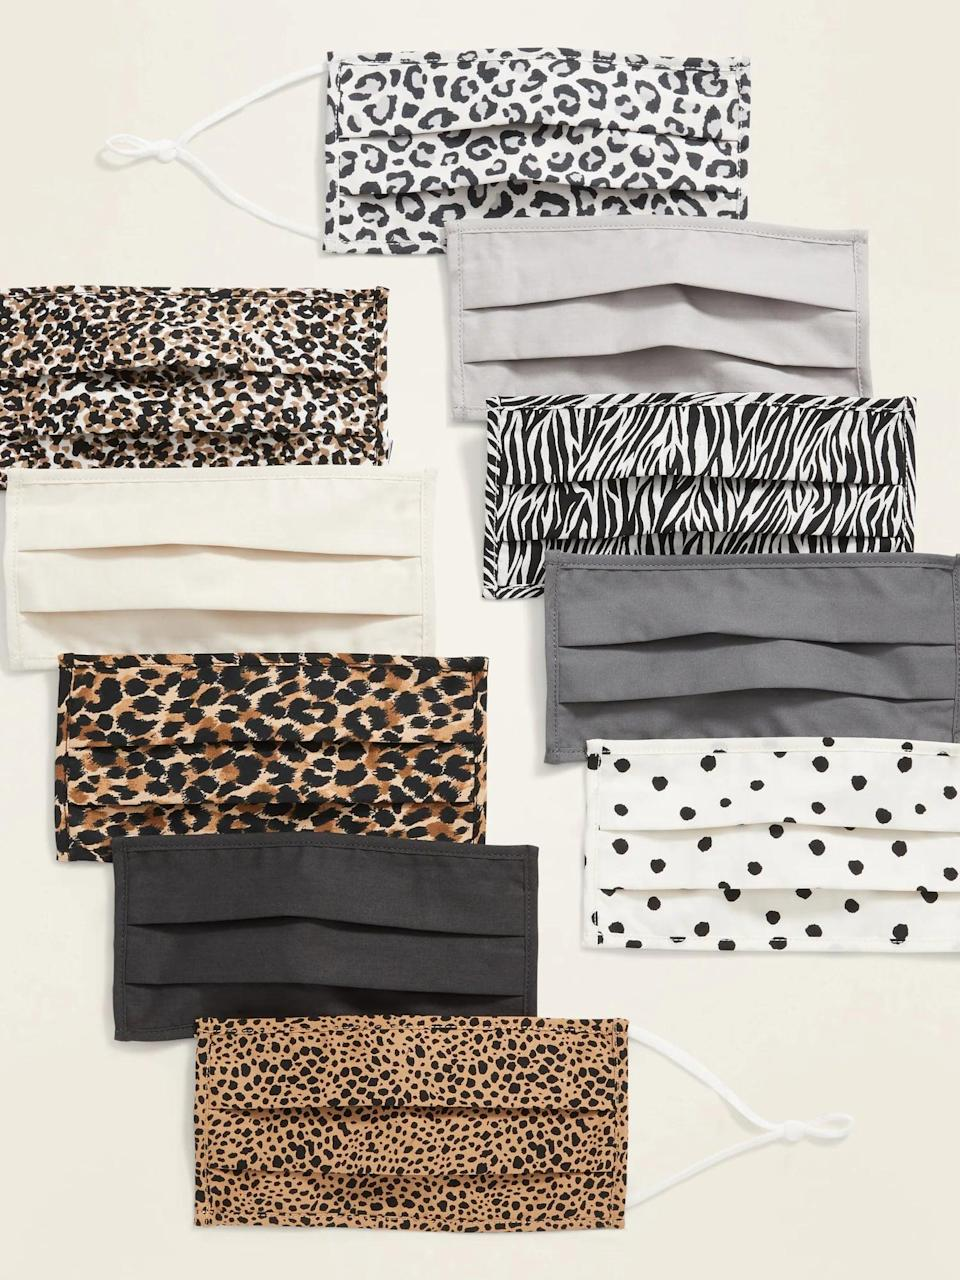 <p>Stock up for the whole season with the massive <span>Old Navy Variety 10-Pack of Triple-Layer Cloth Pleated Face Masks</span> ($25). It's a stunning neutral, animal print so it can not only go with most outfits but also dress them up. It is soft and breathable made from three-ply, woven 100 percent cotton poplin. It even has adjustable over-the-ear straps for a secure and snug fit.</p>